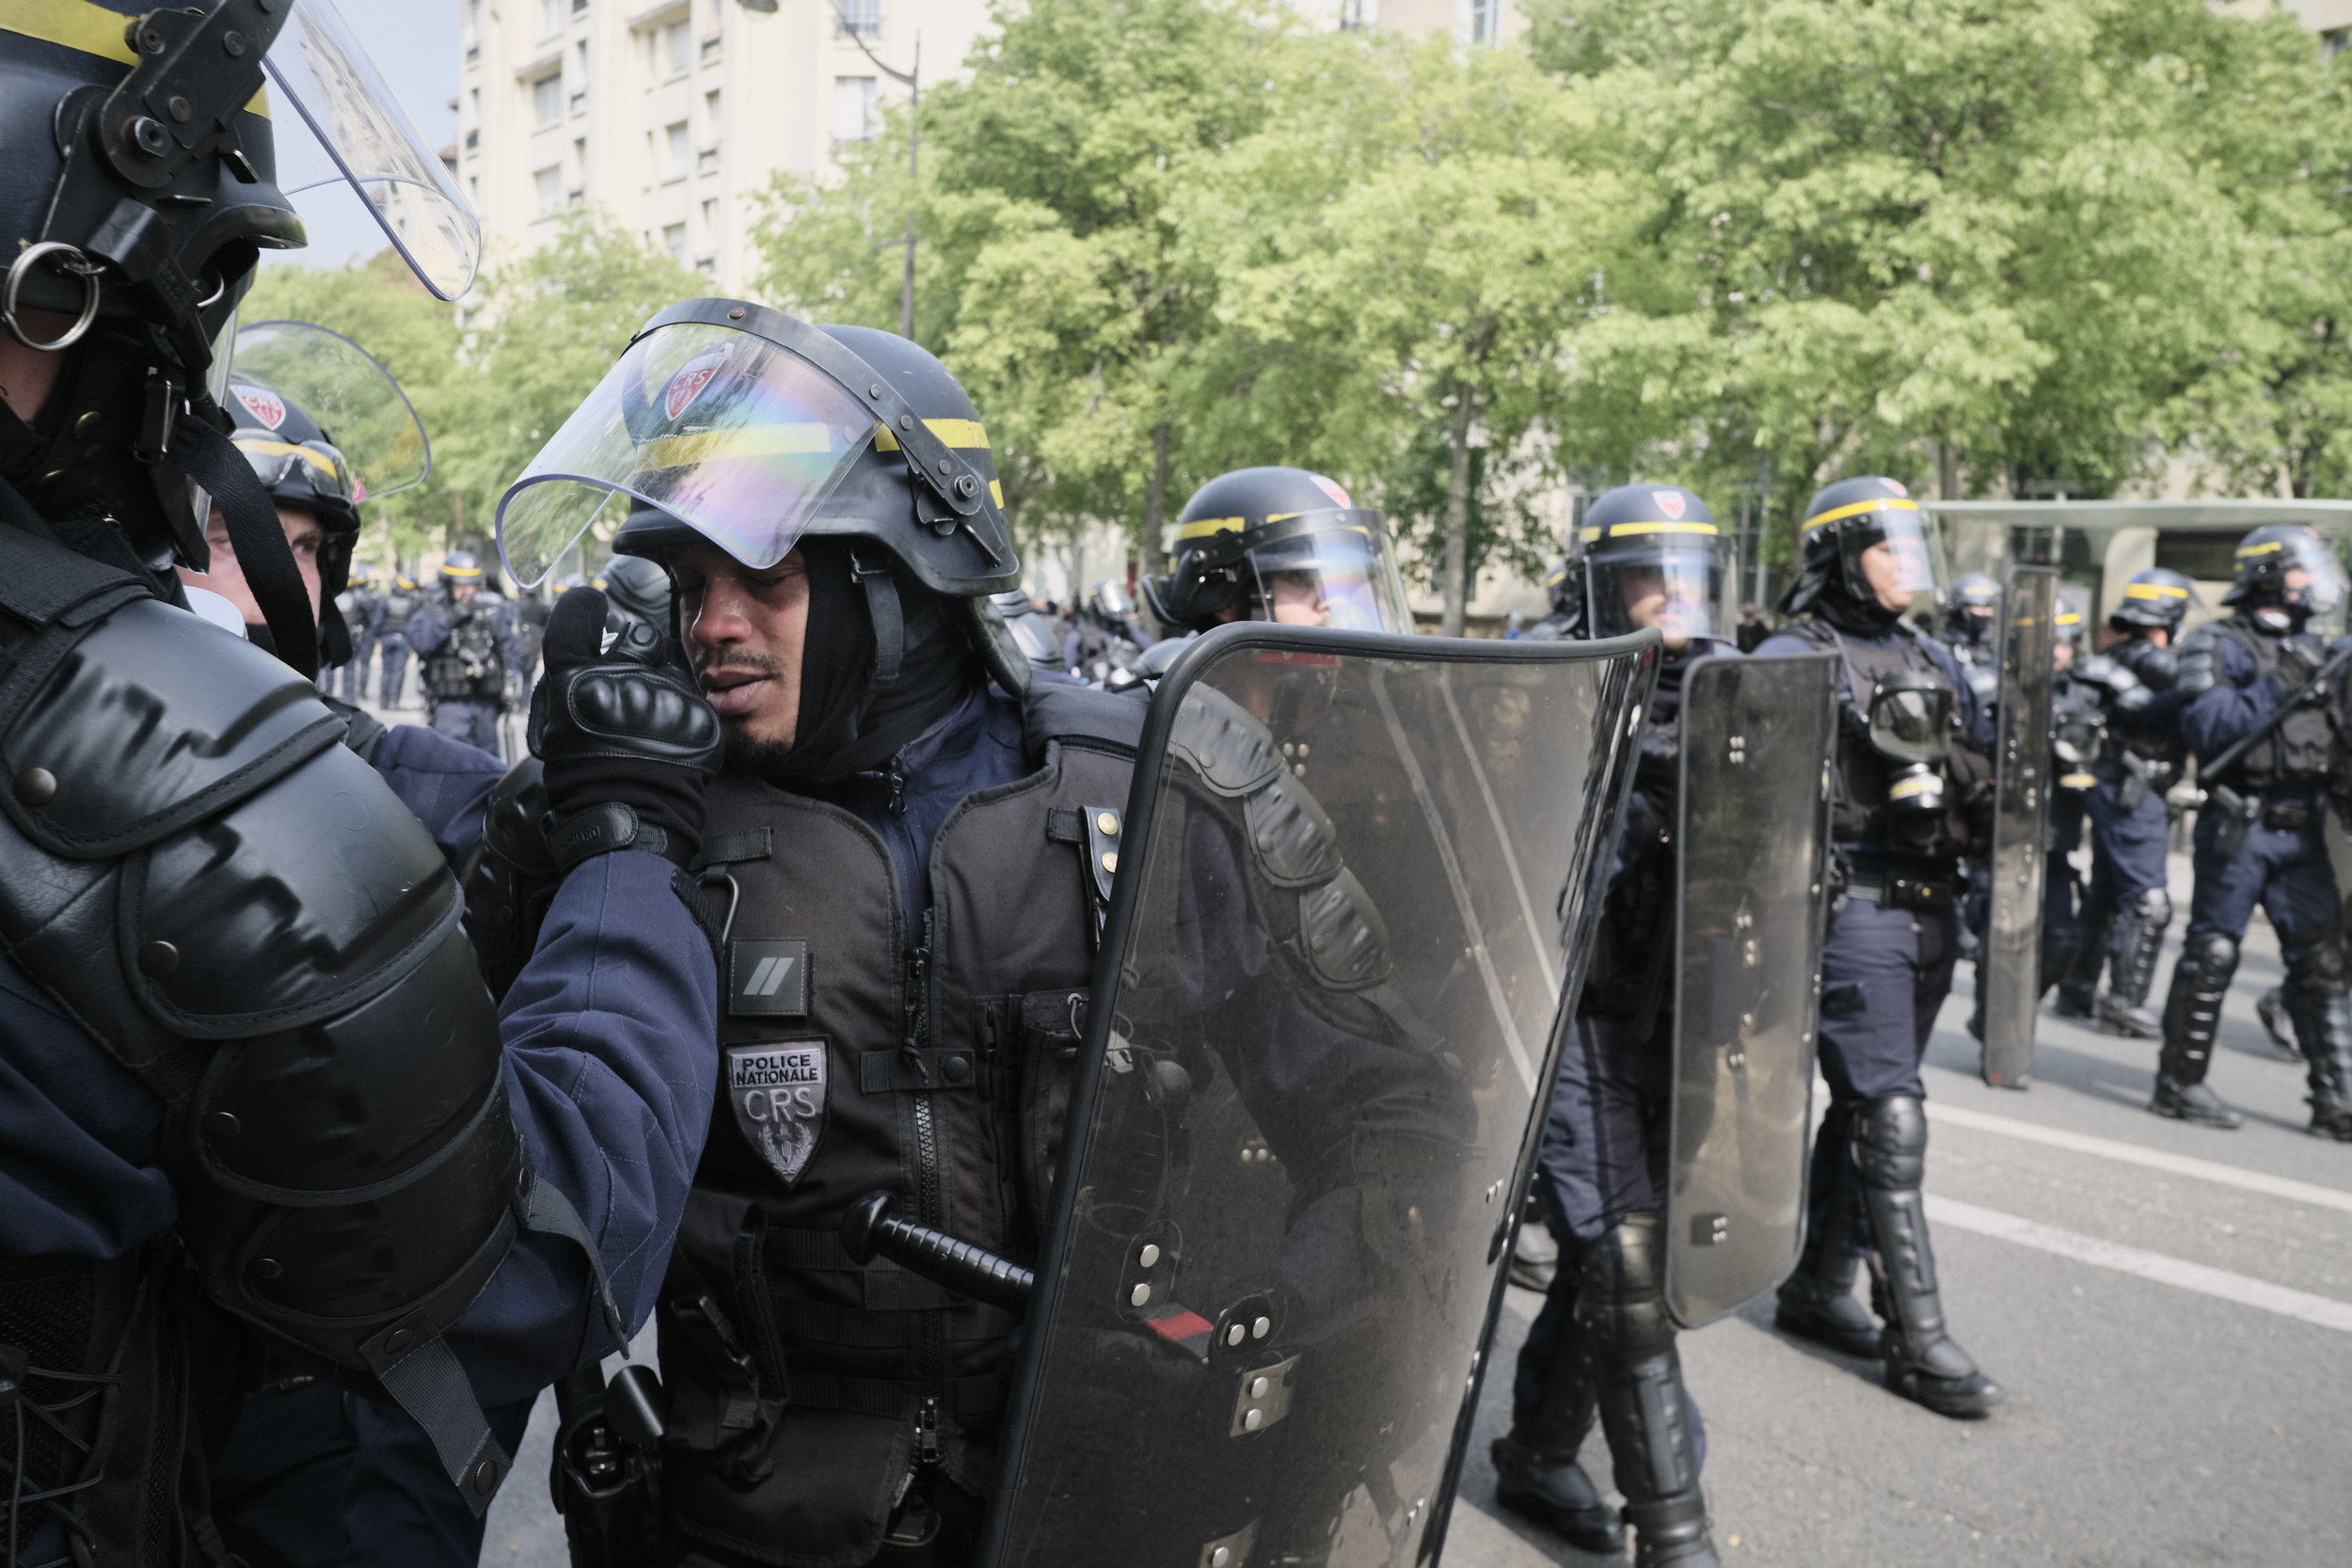 Police officer cleans his colleagues eyes from tear gas after a confrontation between the police and protesters in an attempt to control the crowd during the march to The Place D'italie.